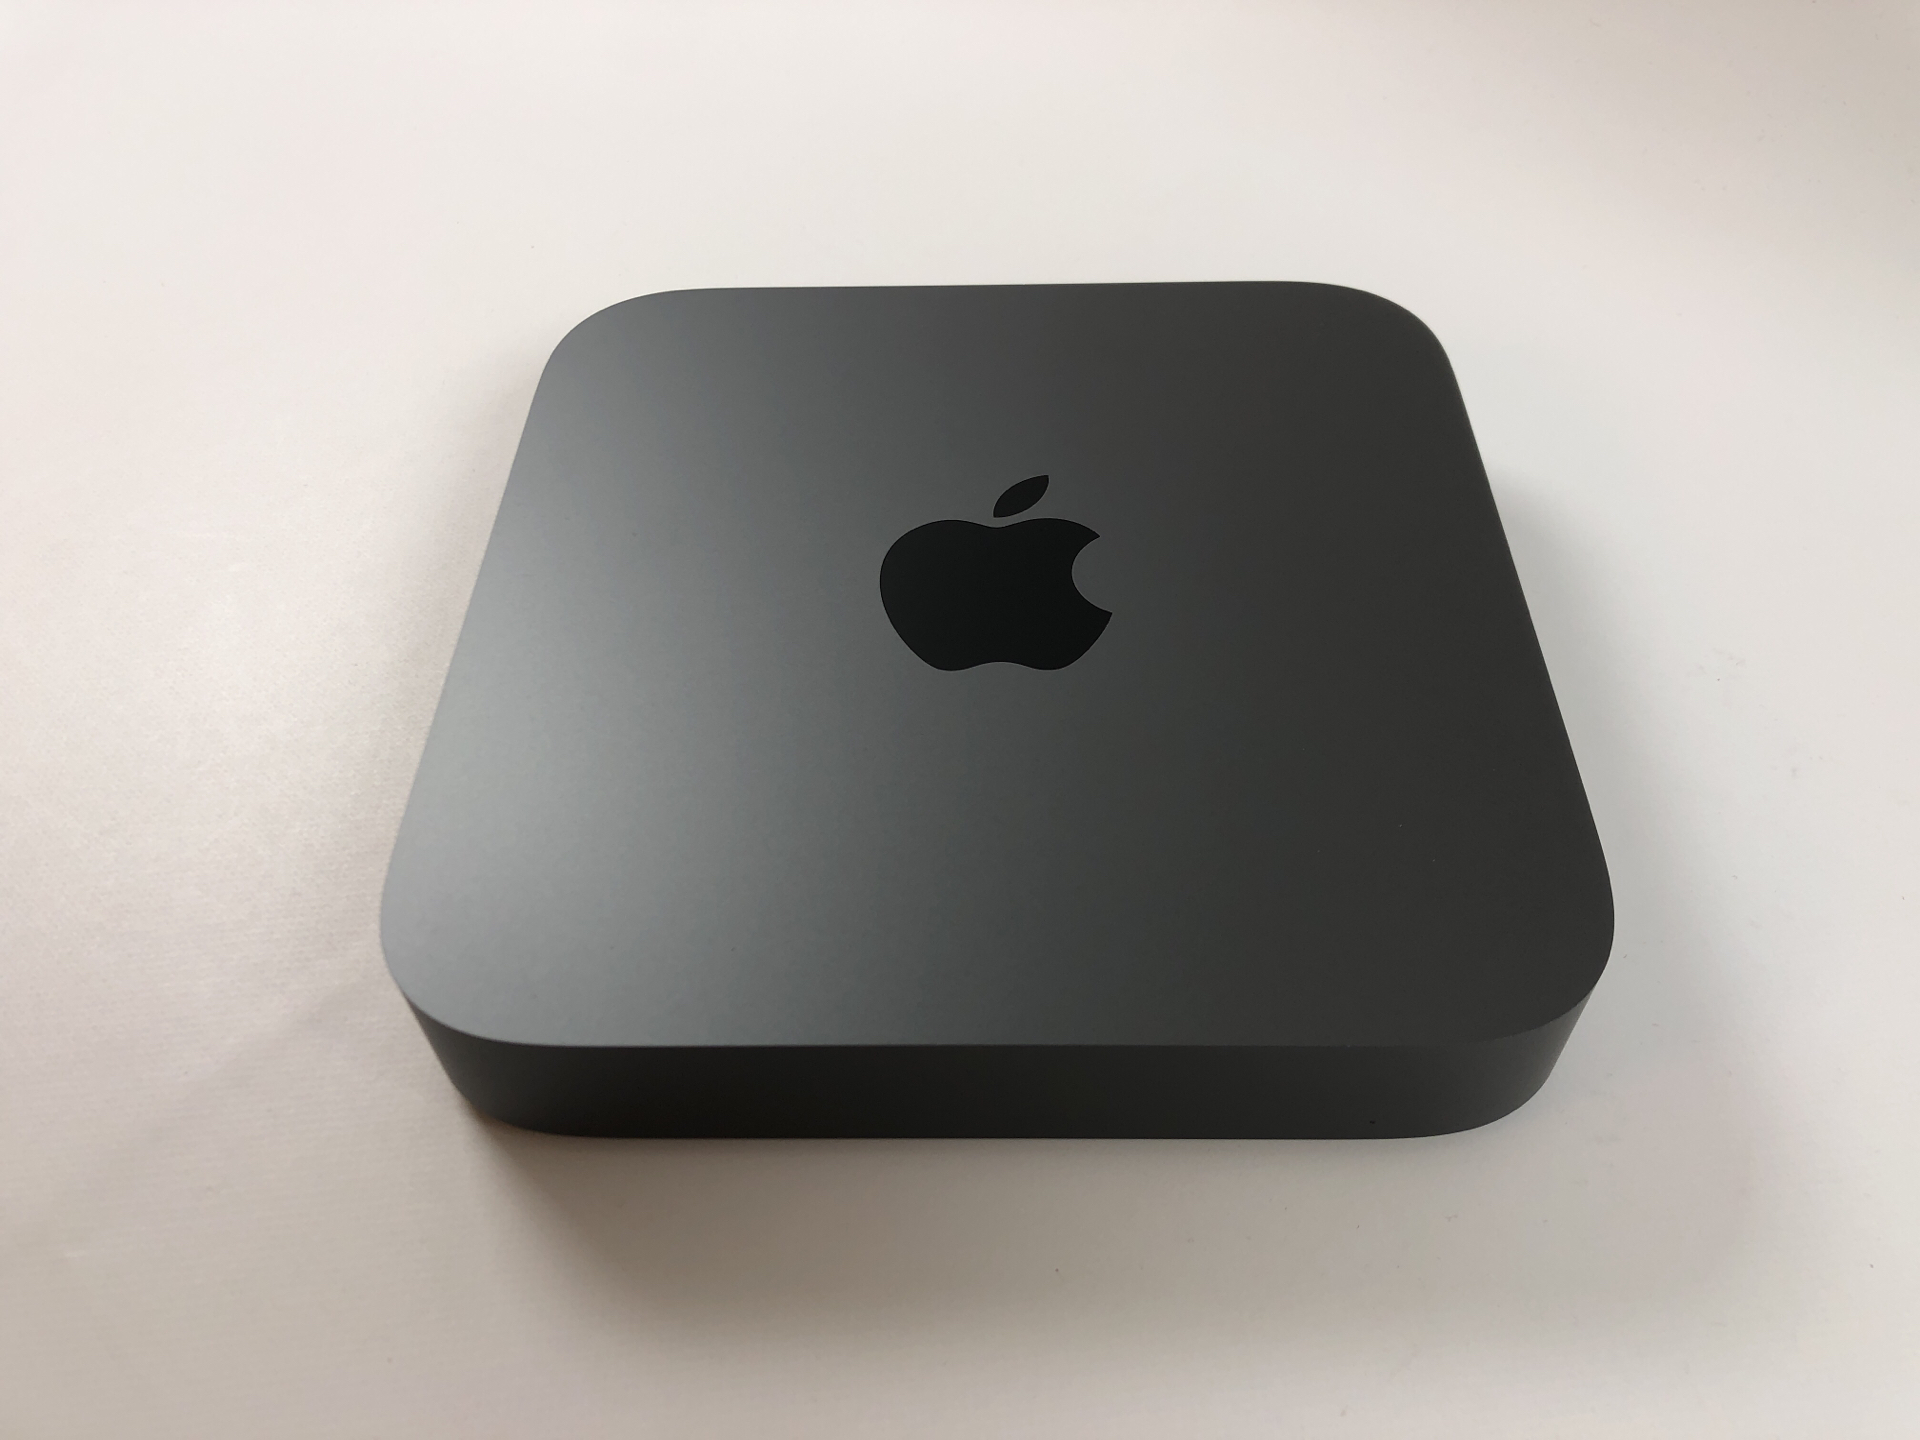 Mac Mini Late 2018 (Intel Quad-Core i3 3.6 GHz 64 GB RAM 128 GB SSD), Intel Quad-Core i3 3.6 GHz, 64 GB RAM, 128 GB SSD, Afbeelding 1